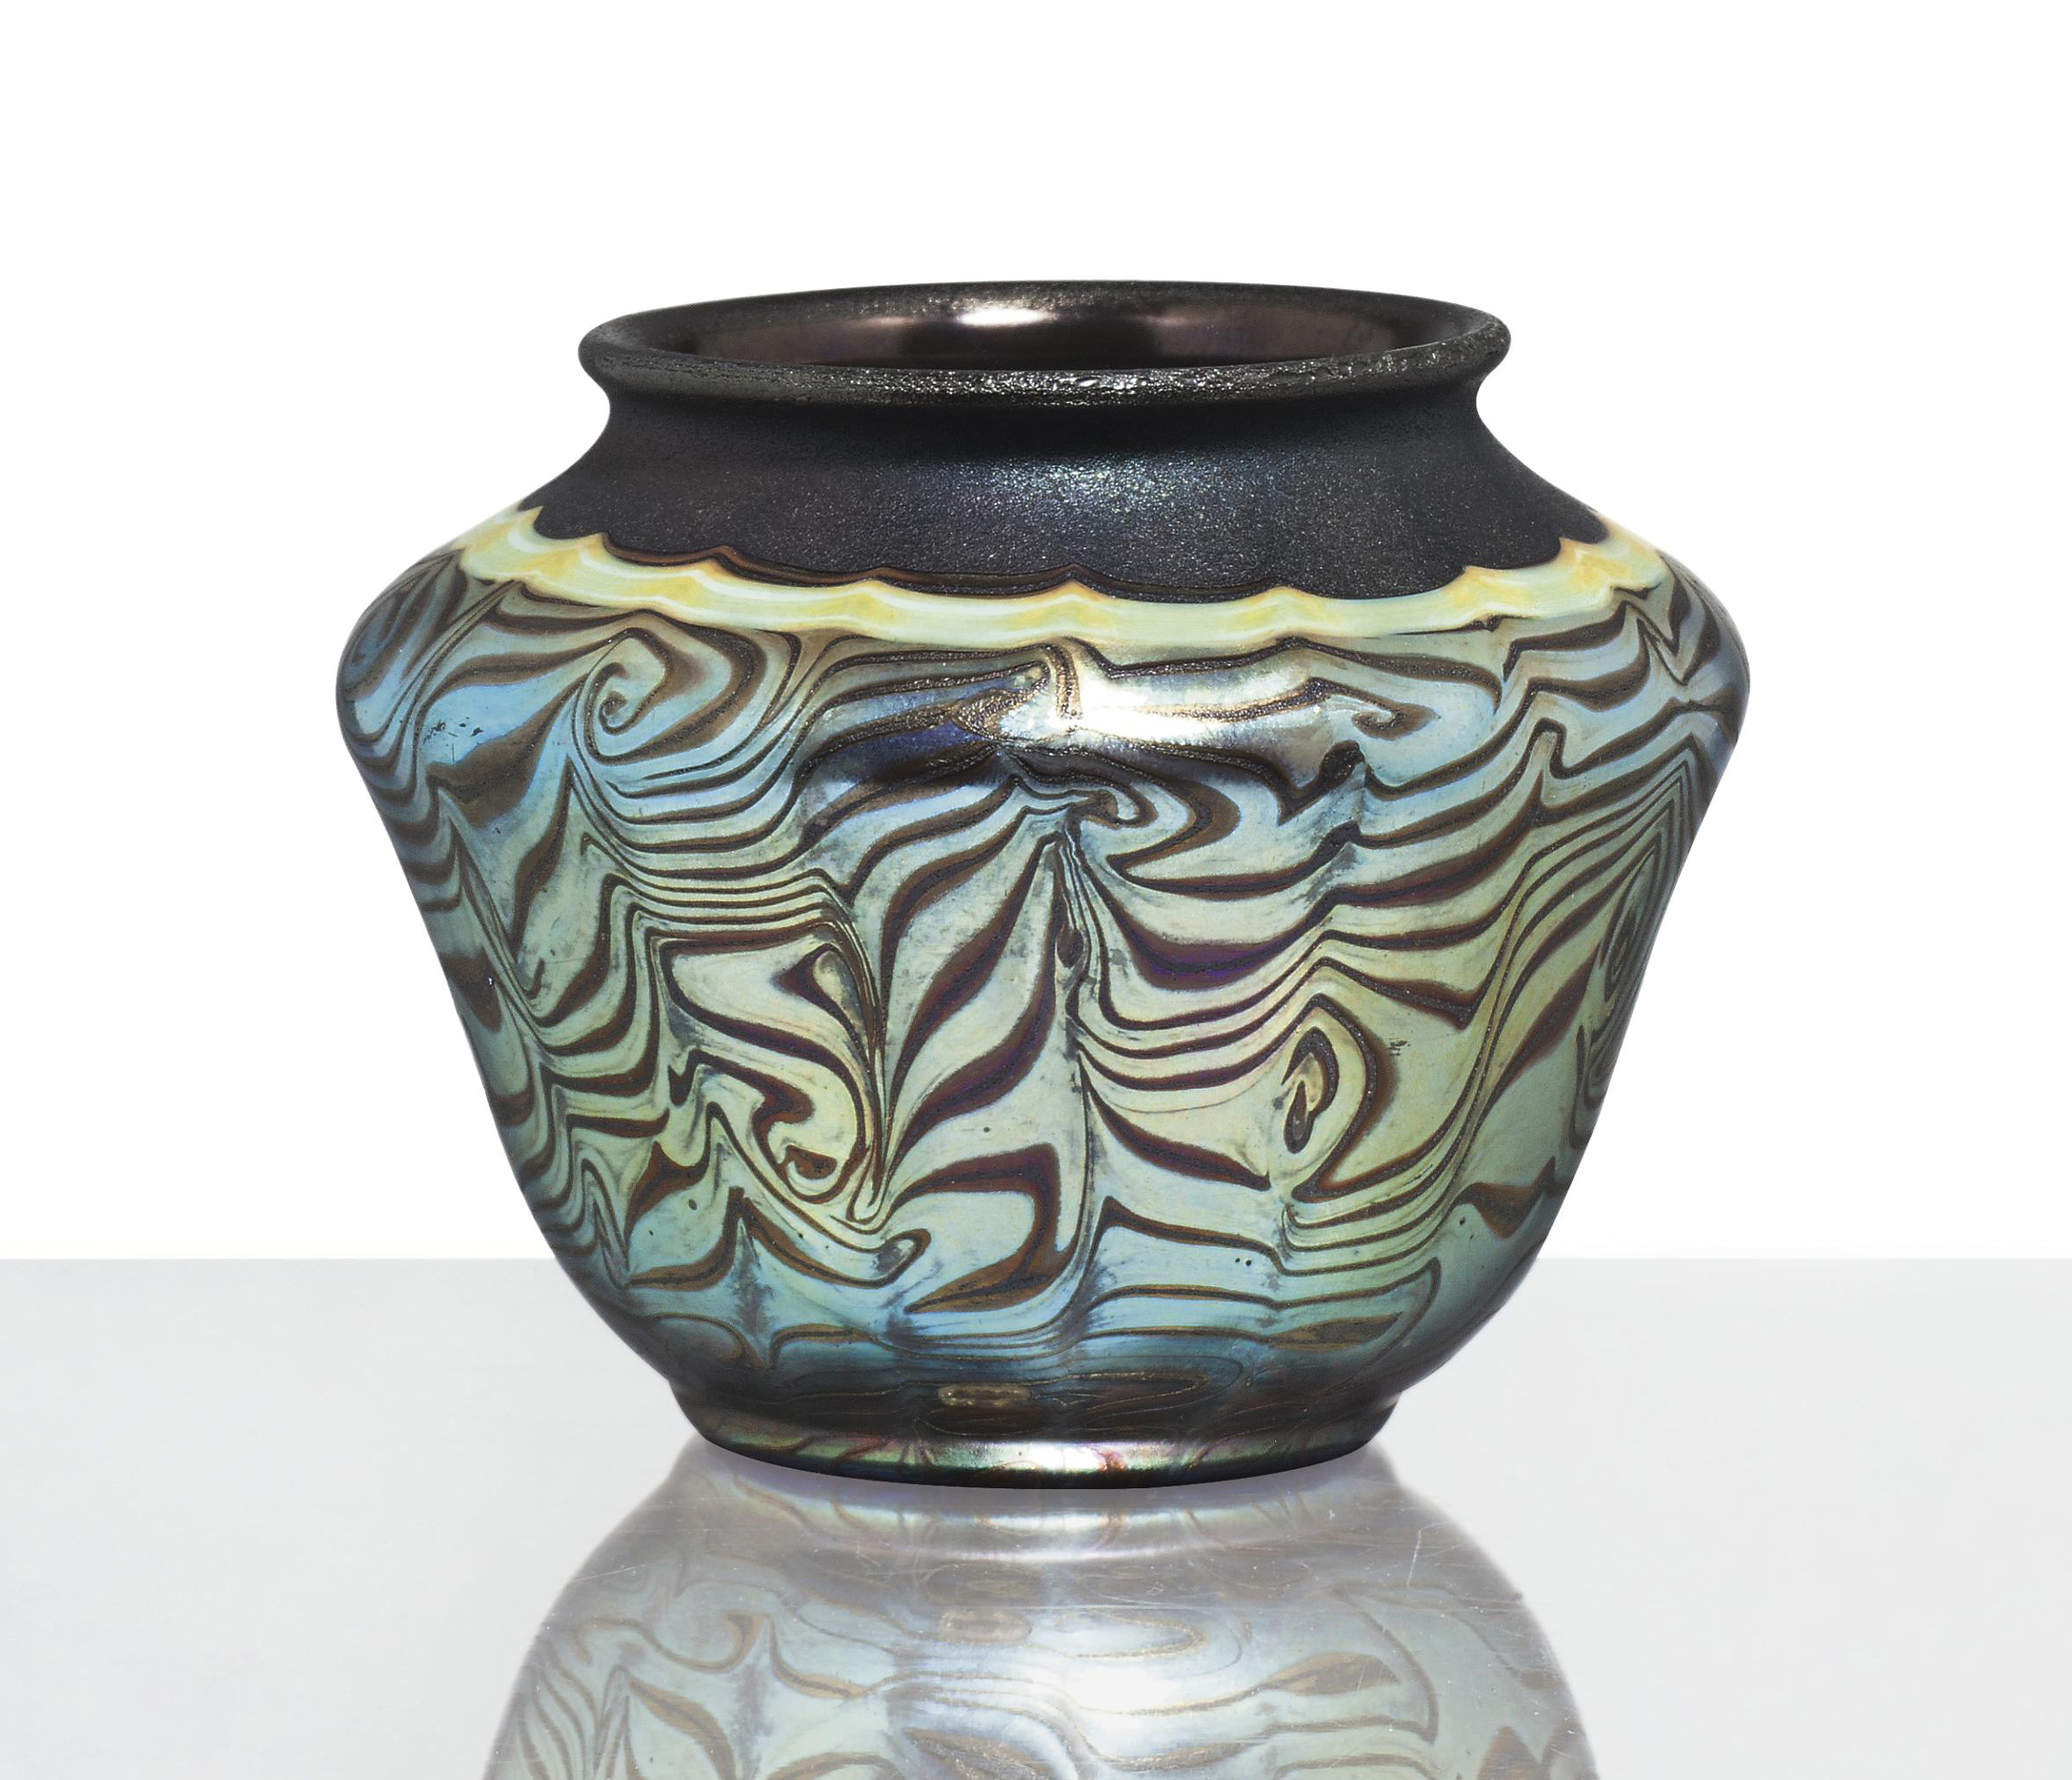 TIFFANY STUDIOS , A DECORATED CYPRIOTE FAVRILE GLASS